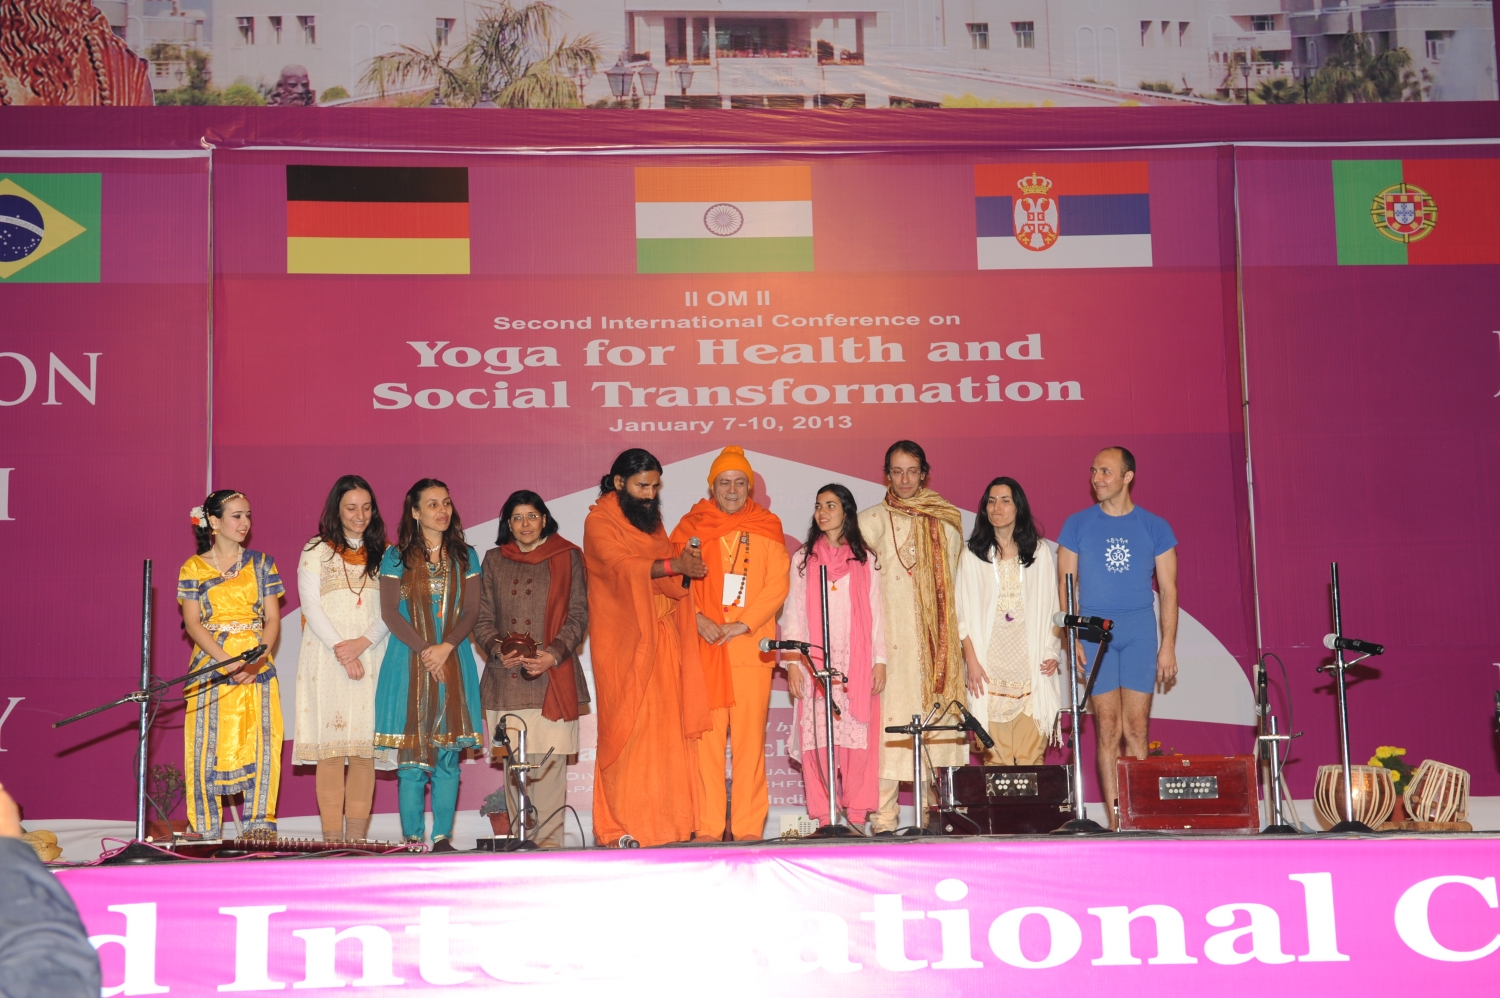 Patañjali Yogapeeth - Yoga for Health and Social Transformation - India, Haridvar - 2013, January